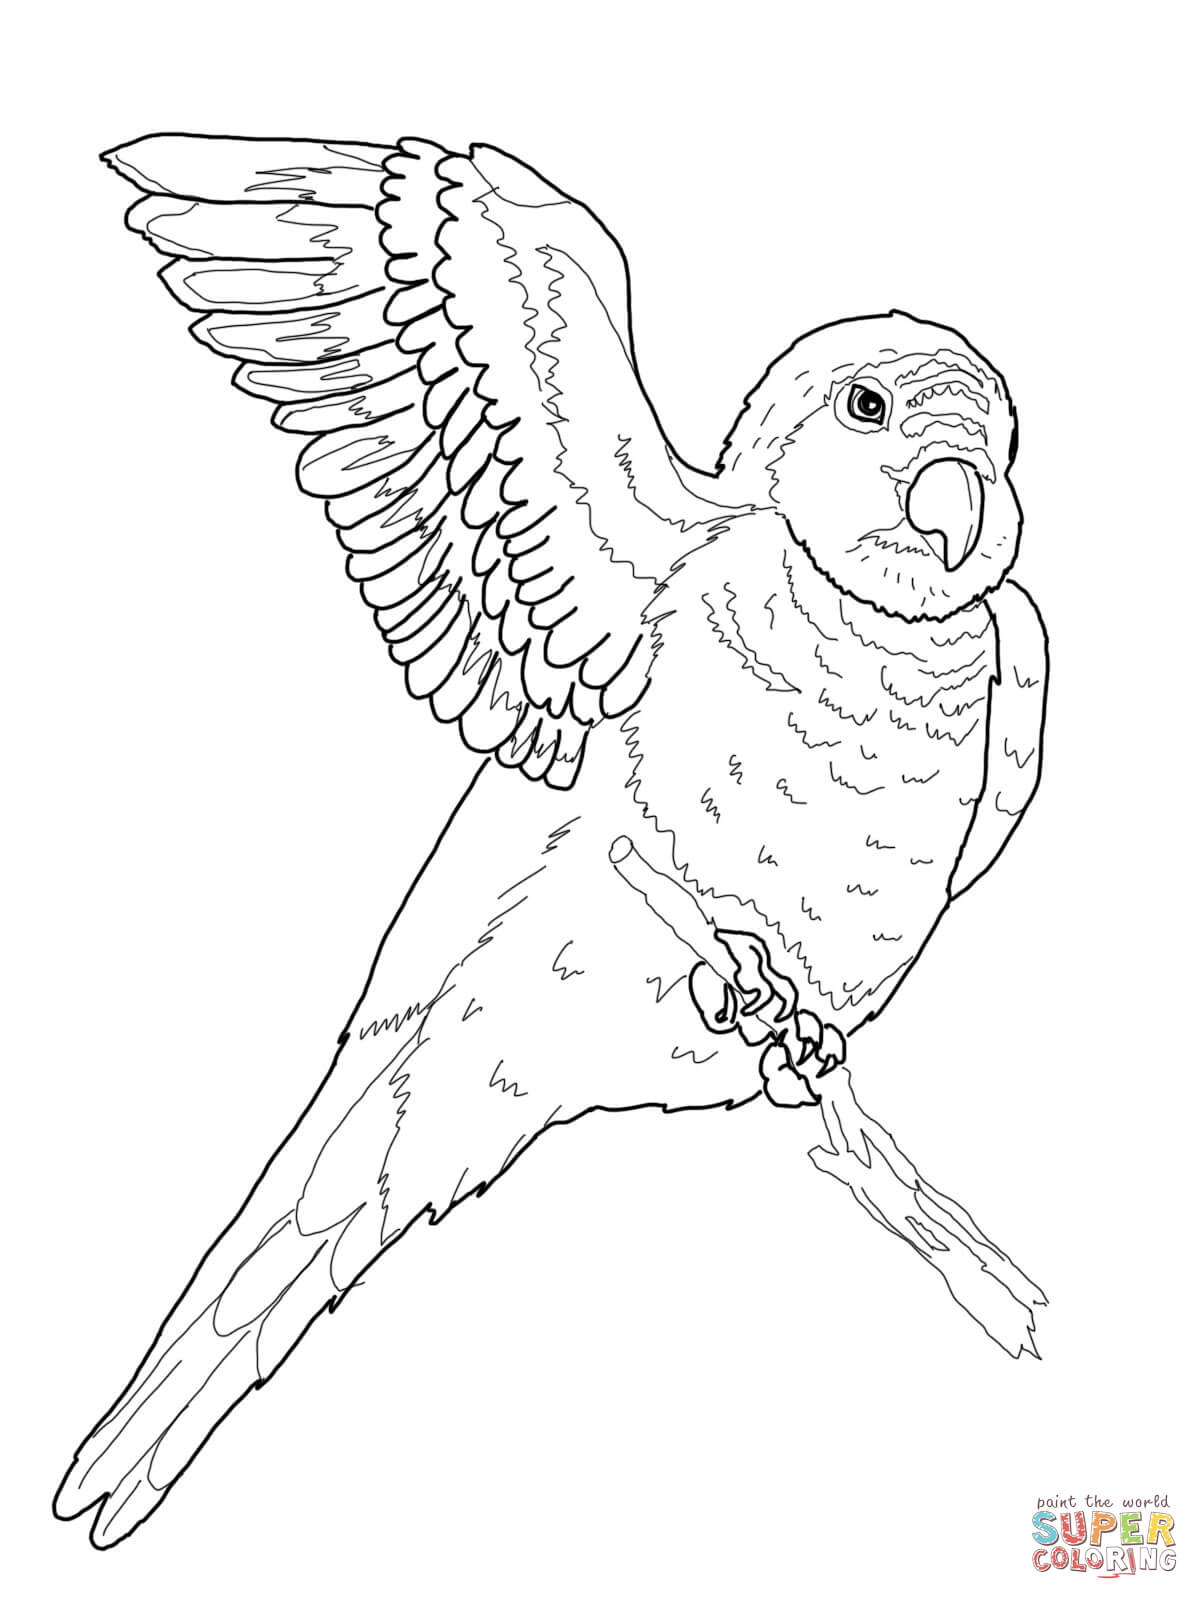 King Parrot coloring #16, Download drawings